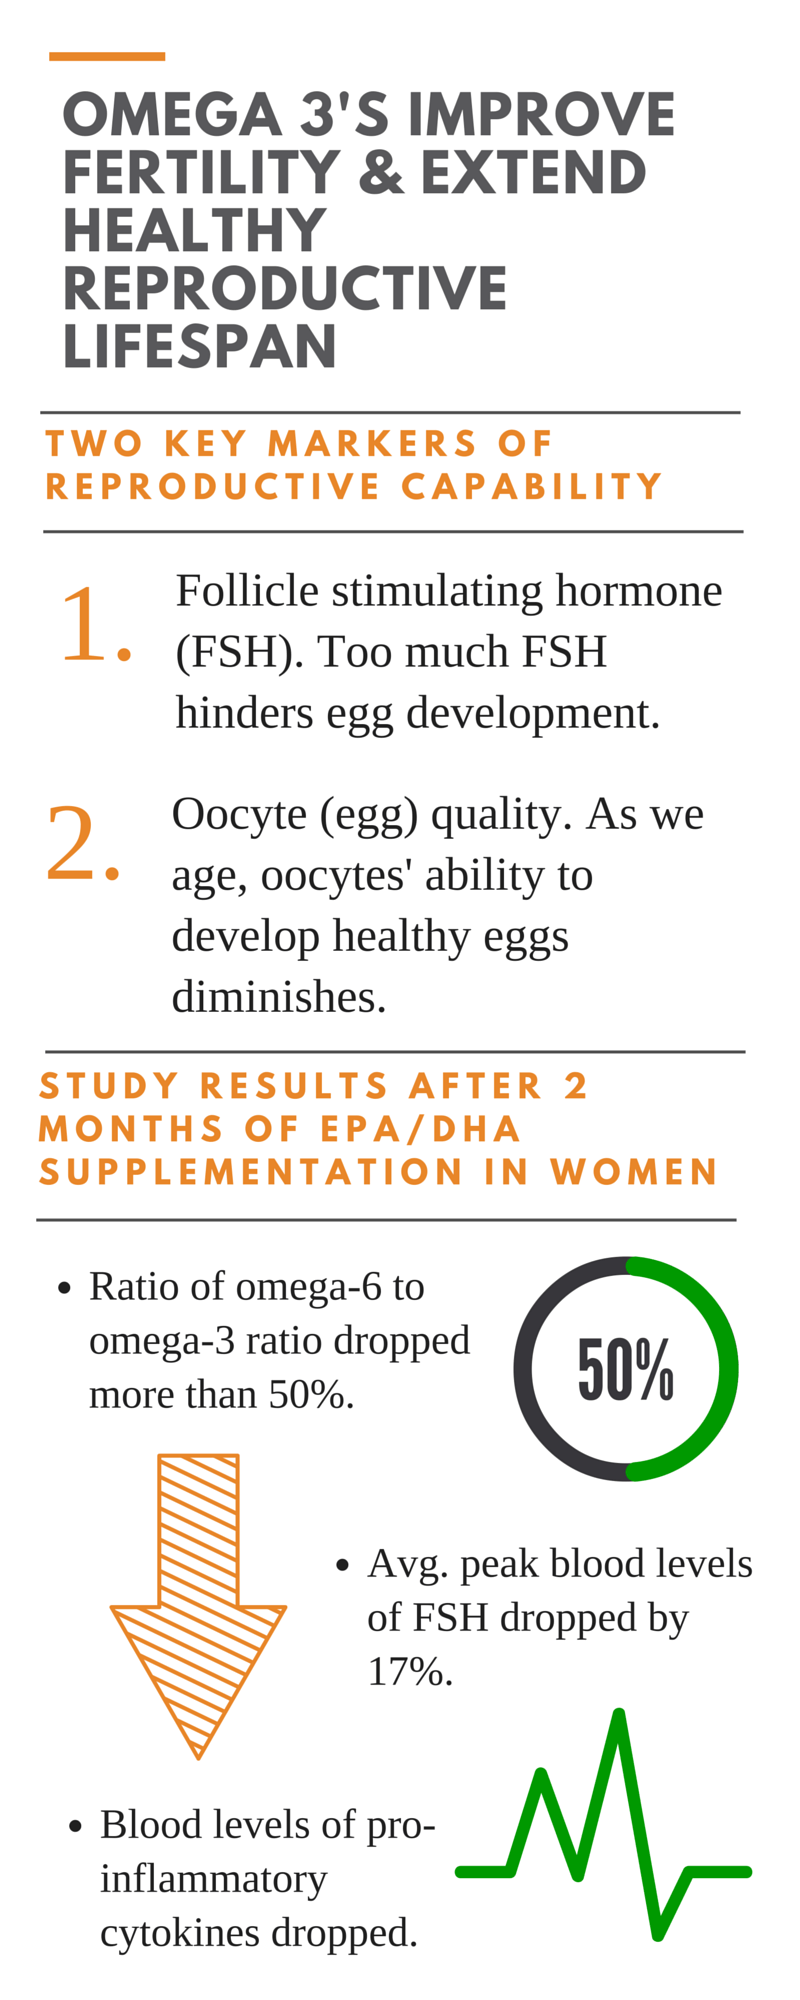 Omega 3's Improve Fertility & Extend Healthy Reproductive Lifestpan (1)